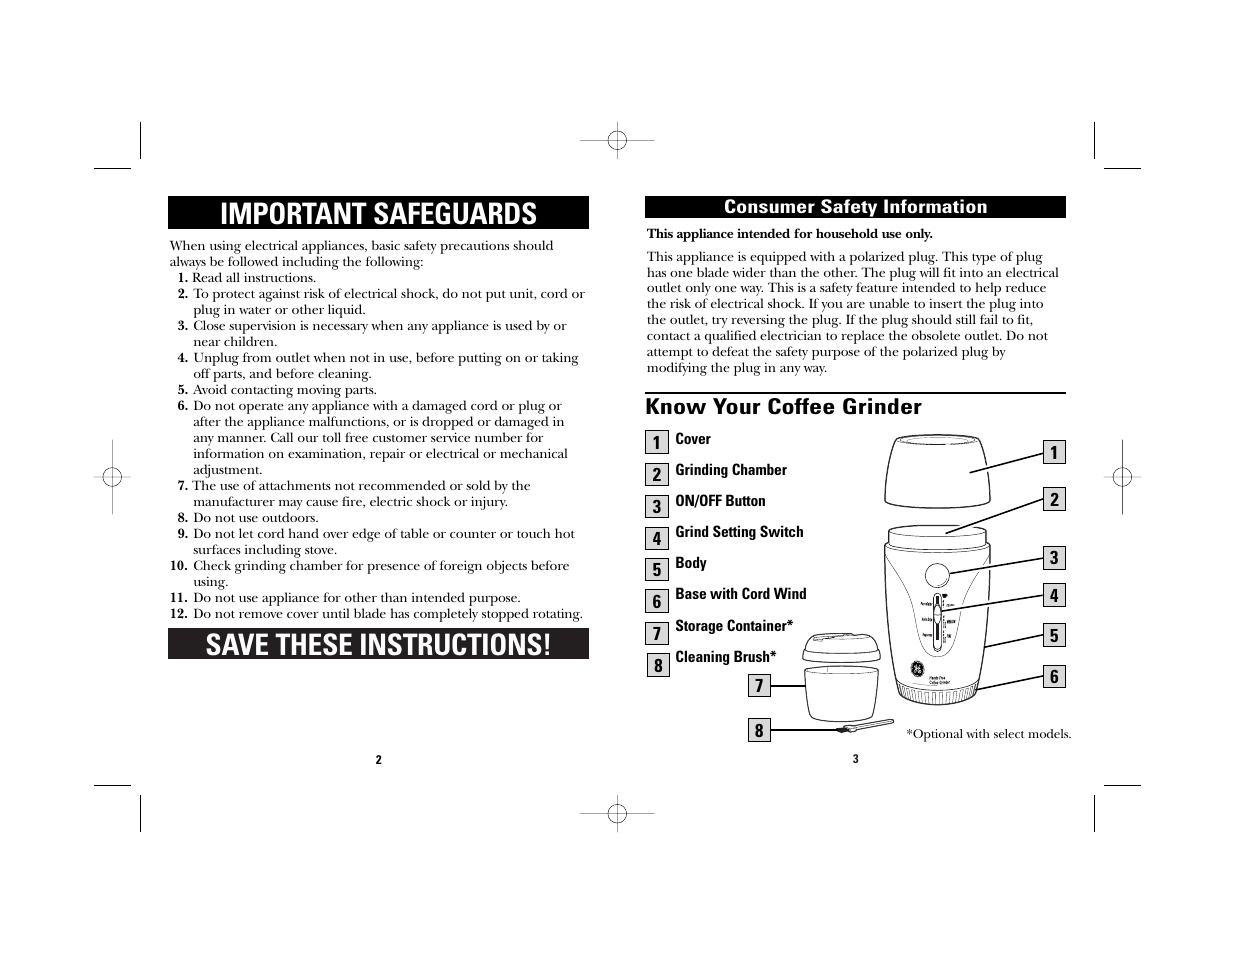 save these instructions important safeguards know your coffee rh manualsdir com Swing Away Can Opener Manual Mini Manual Can Openers